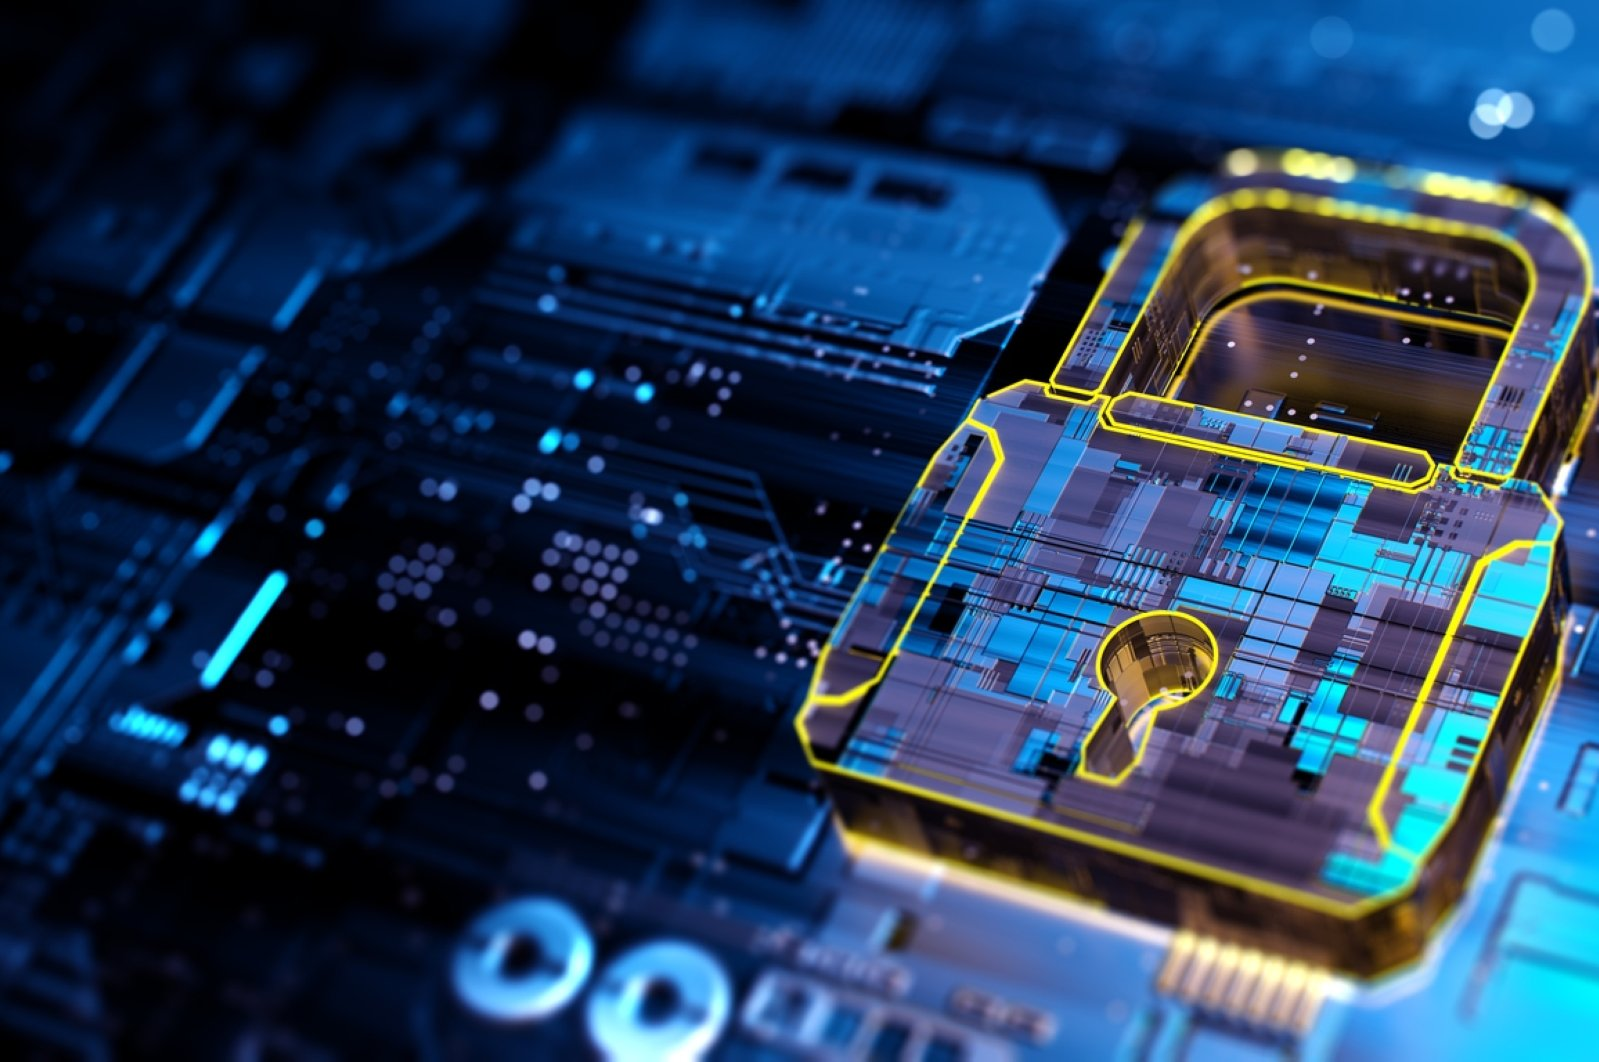 Kron became the first local firm identified on U.S.-based firm Gartner's cybersecurity list. (iStock Photo)